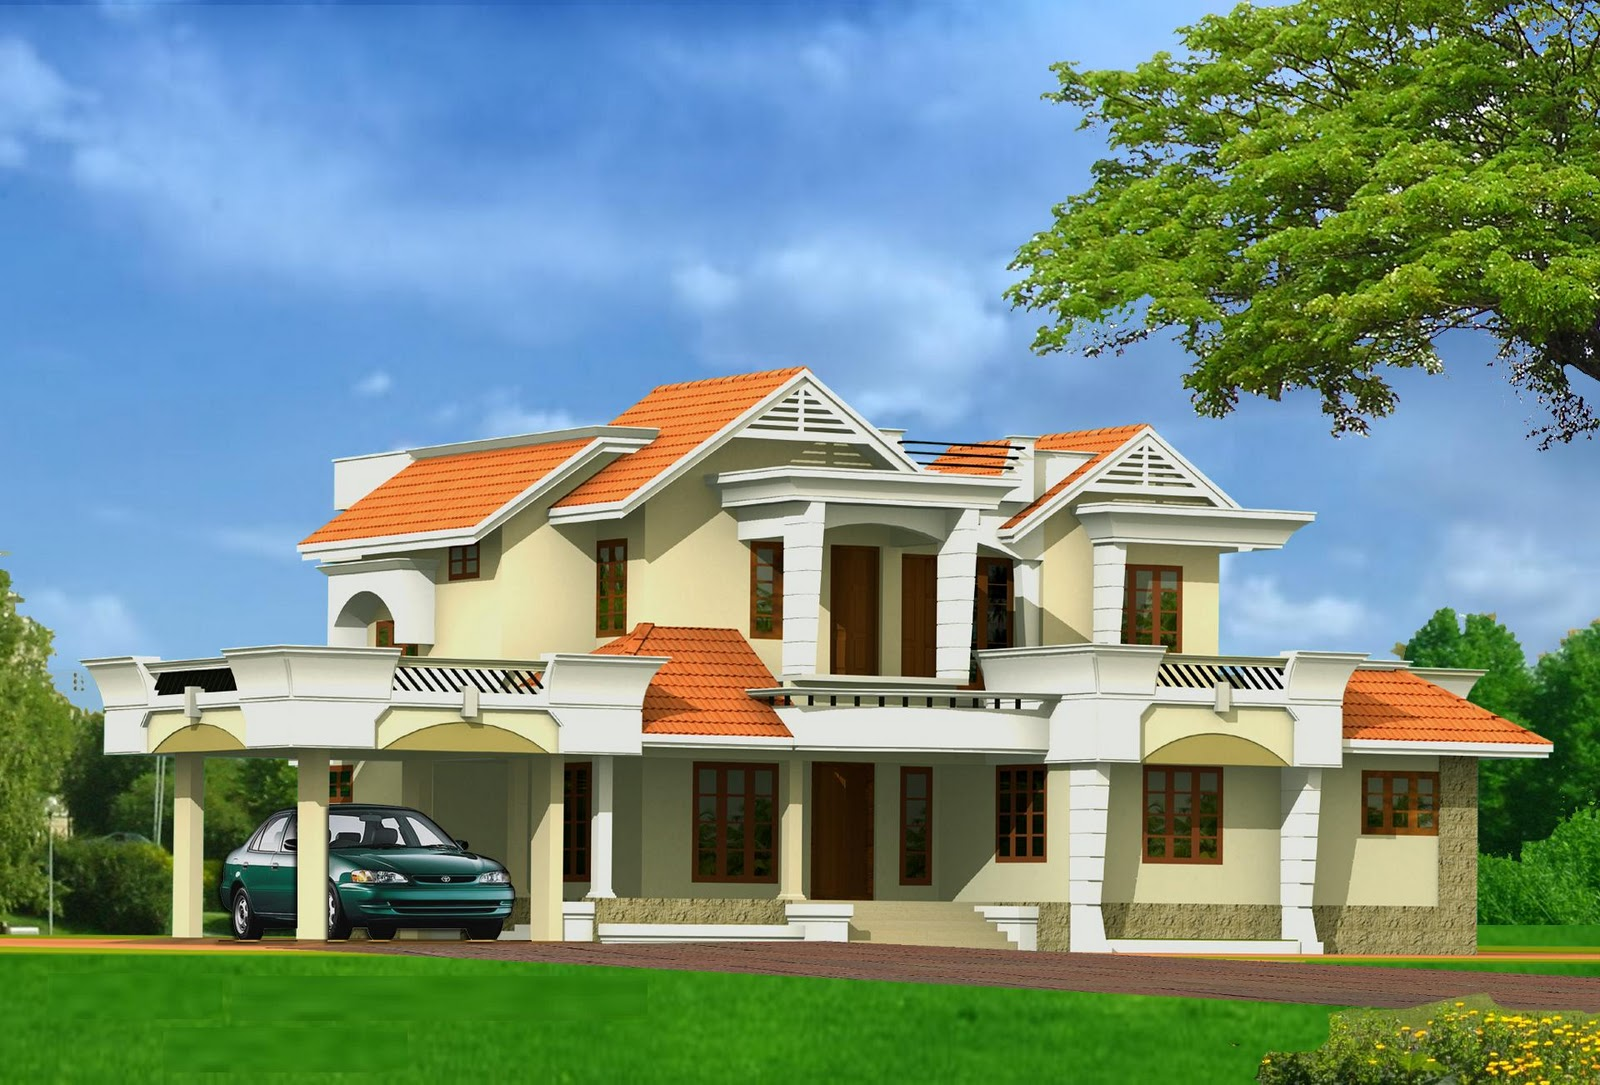 House plans and design architectural designs of for Home construction design